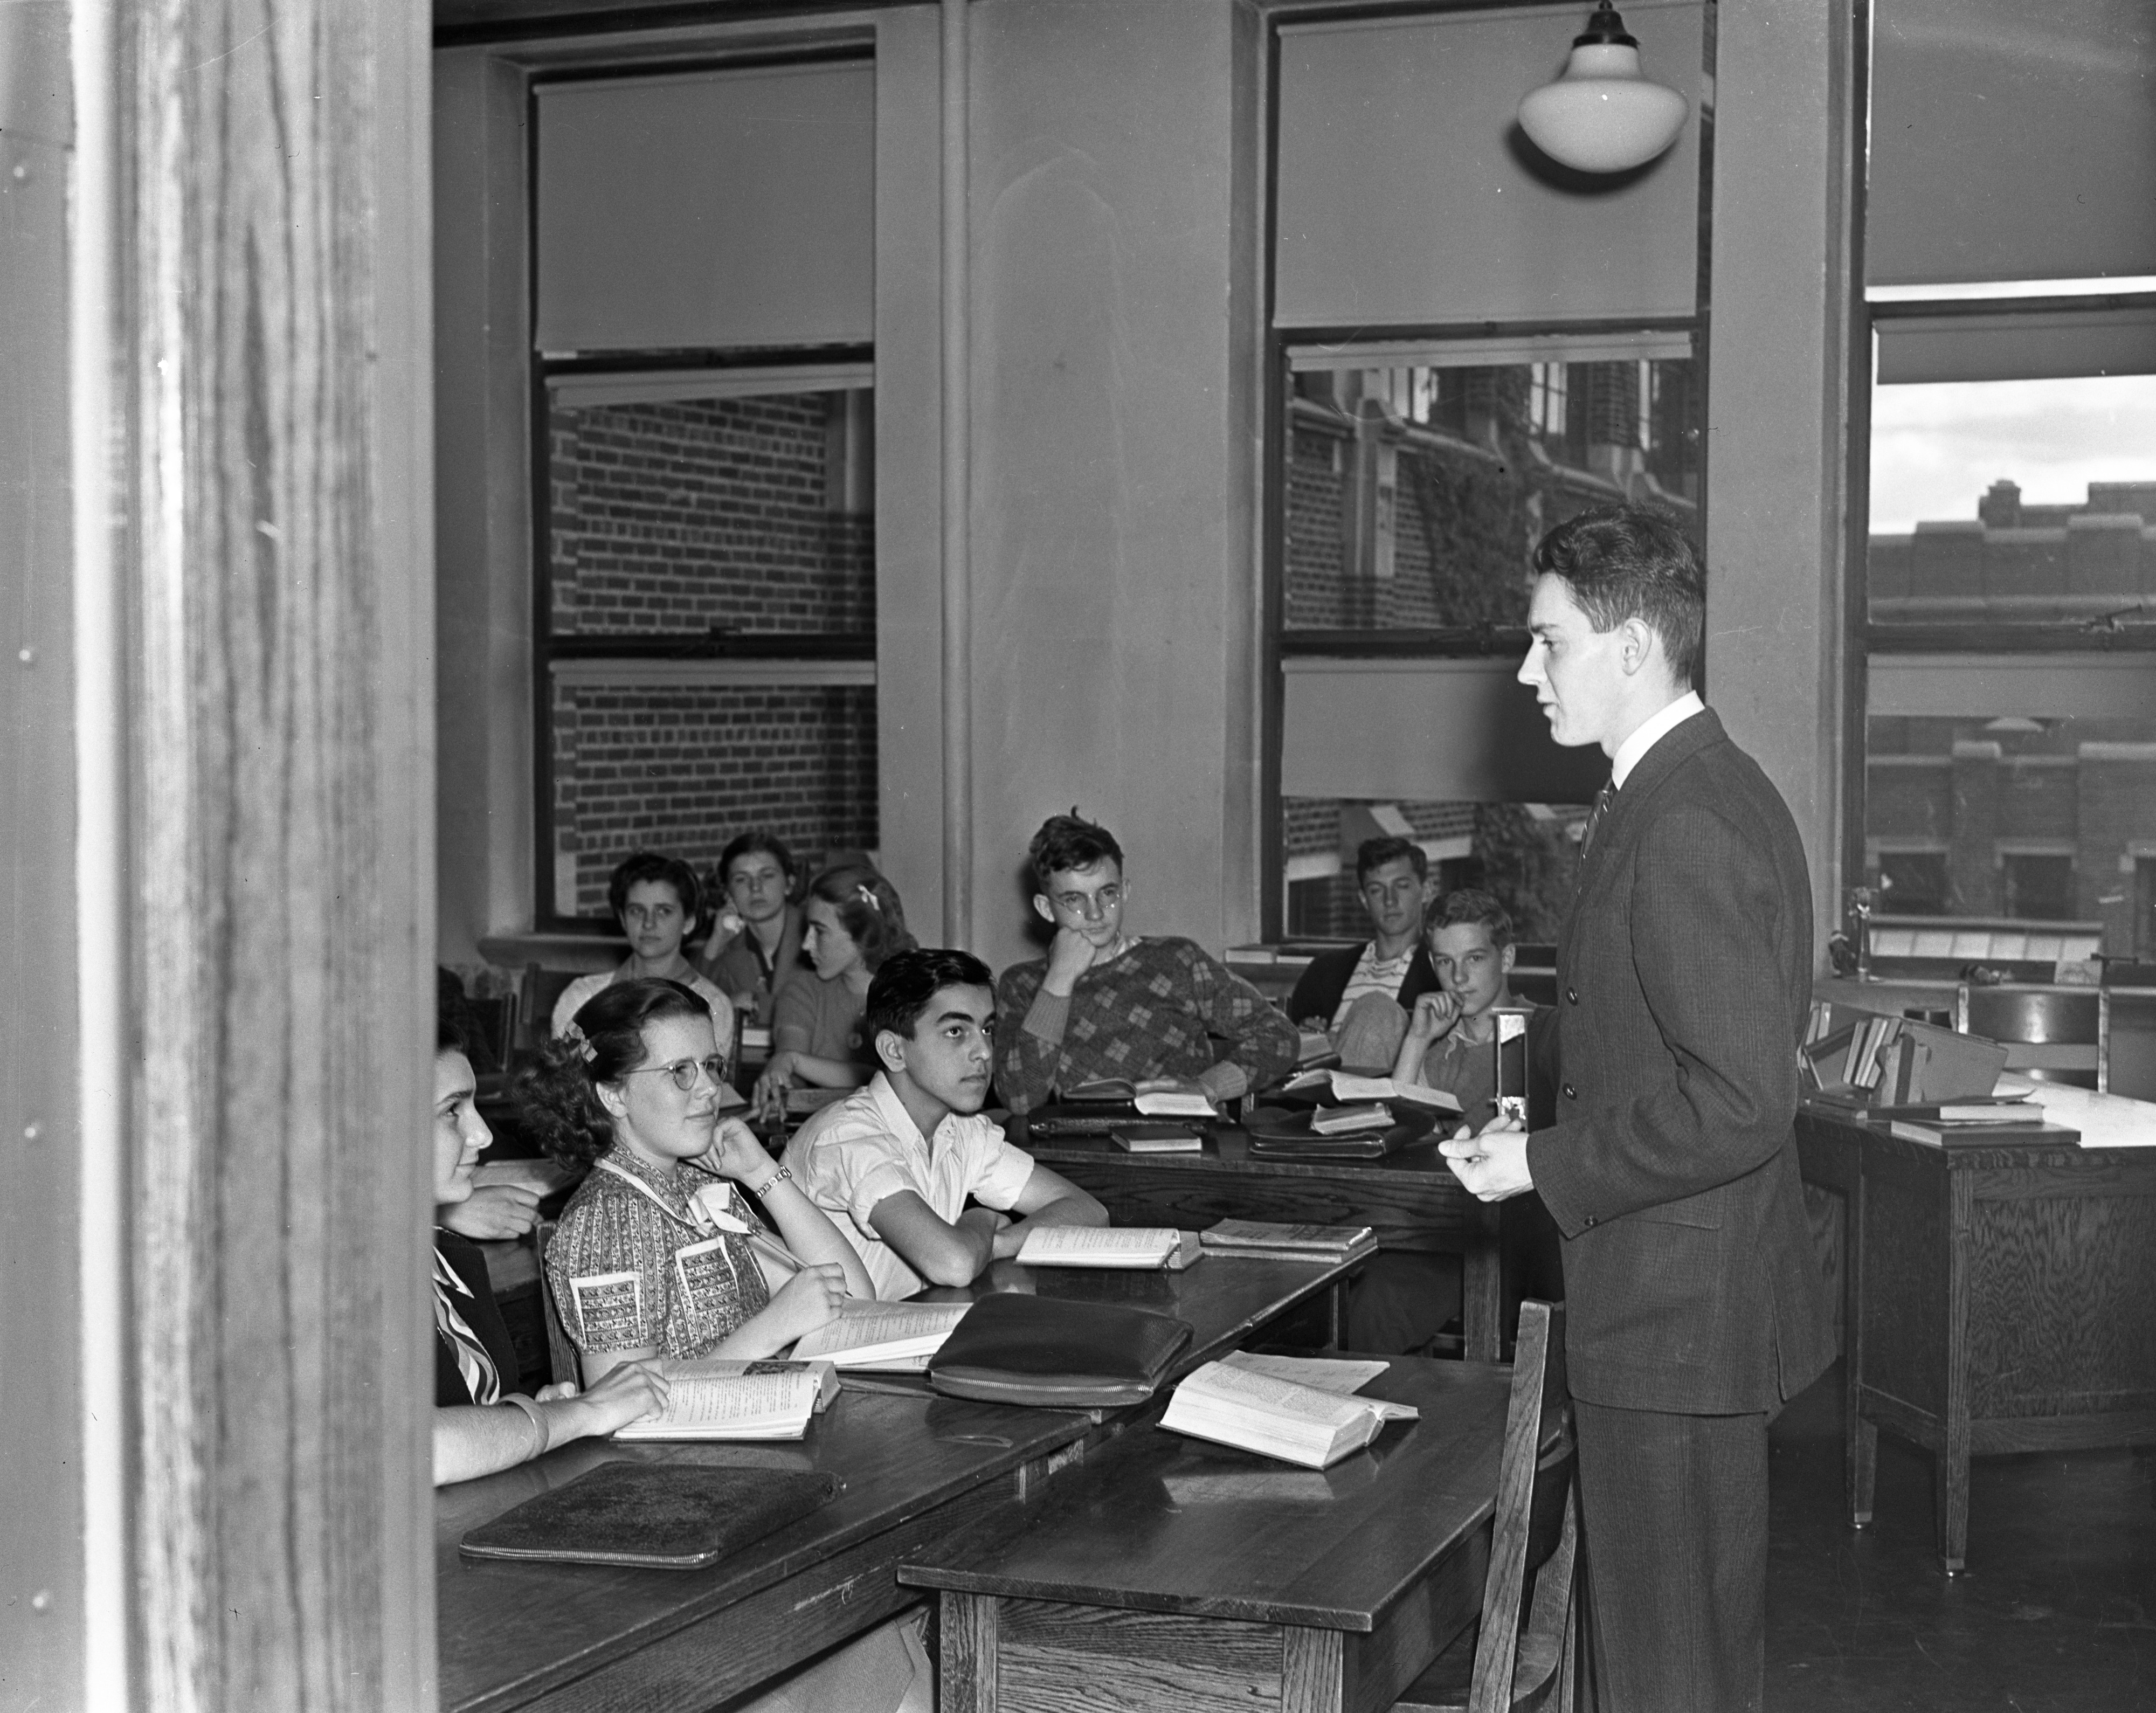 University High School's Teacherless Day, 1938 image